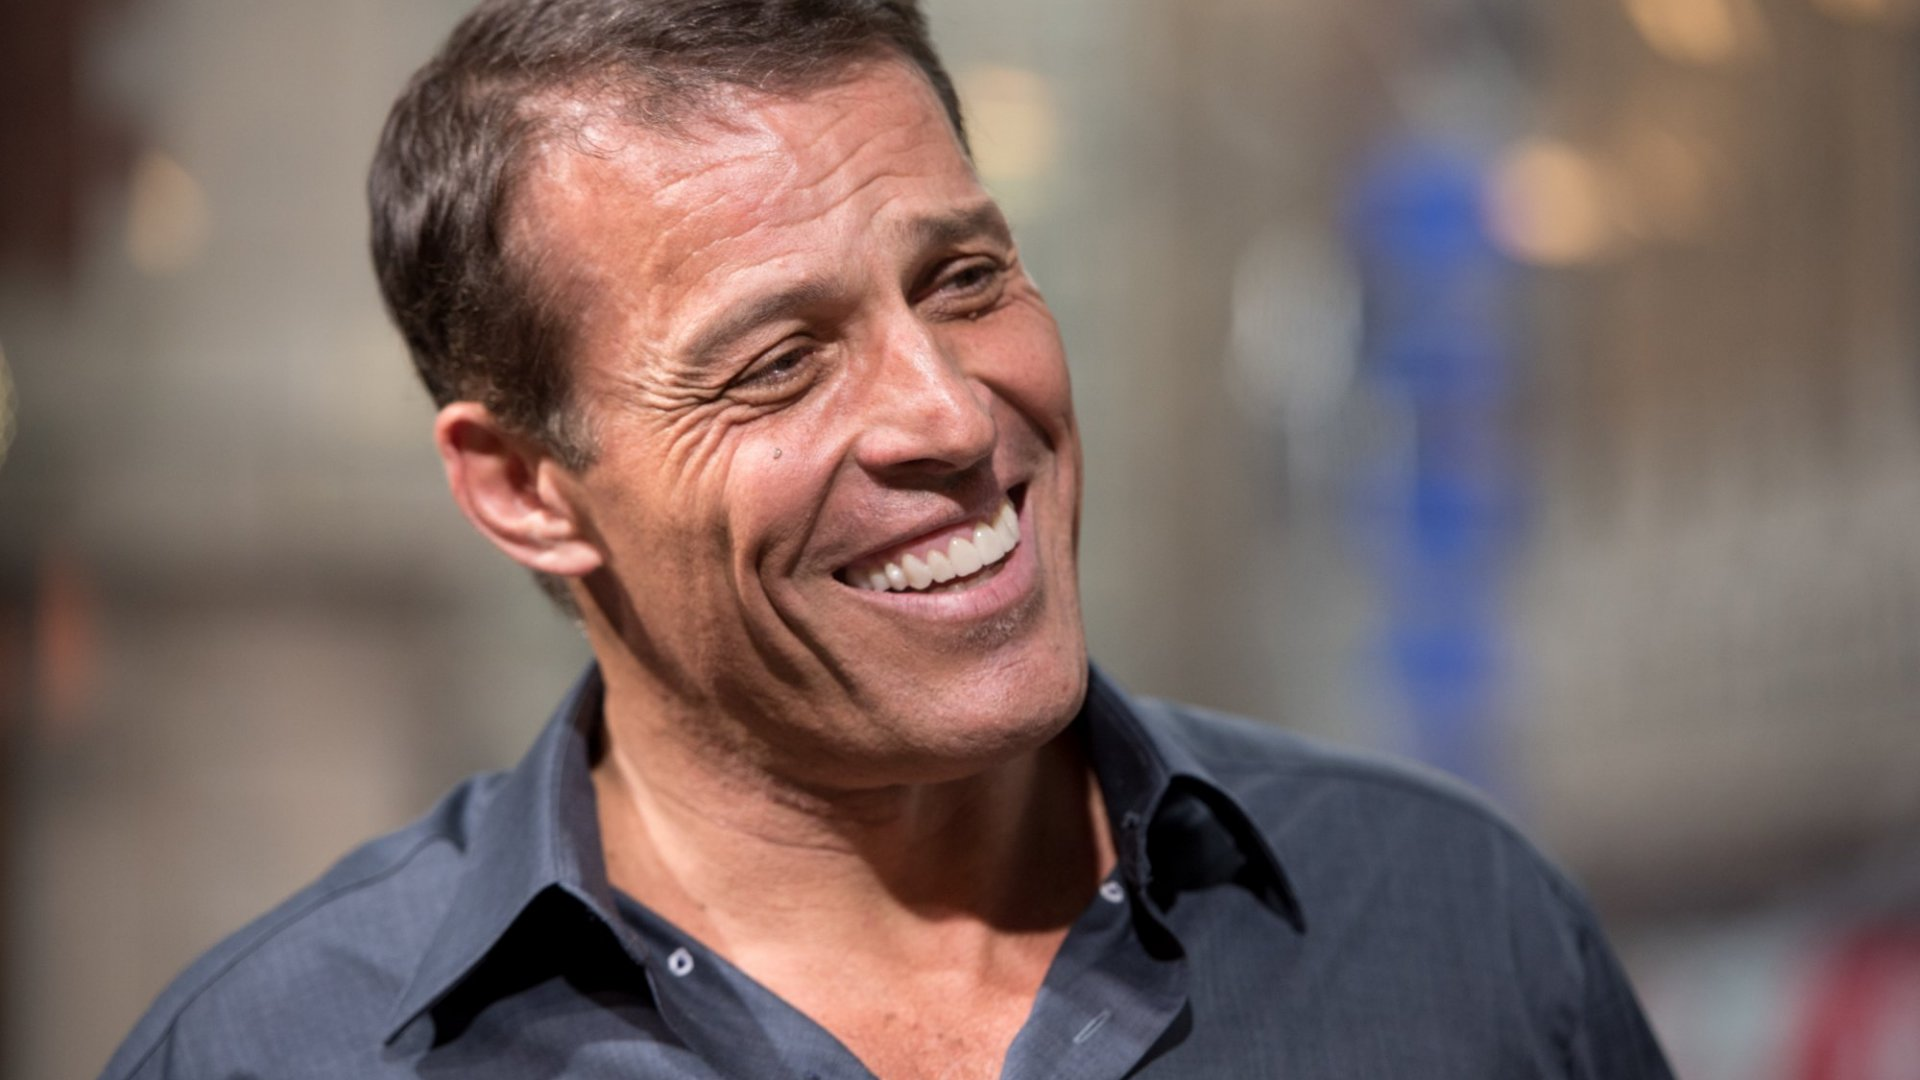 Tony Robbins Says This 4-Letter Word Is the Greatest Obstacle in Pursuing Your Dreams